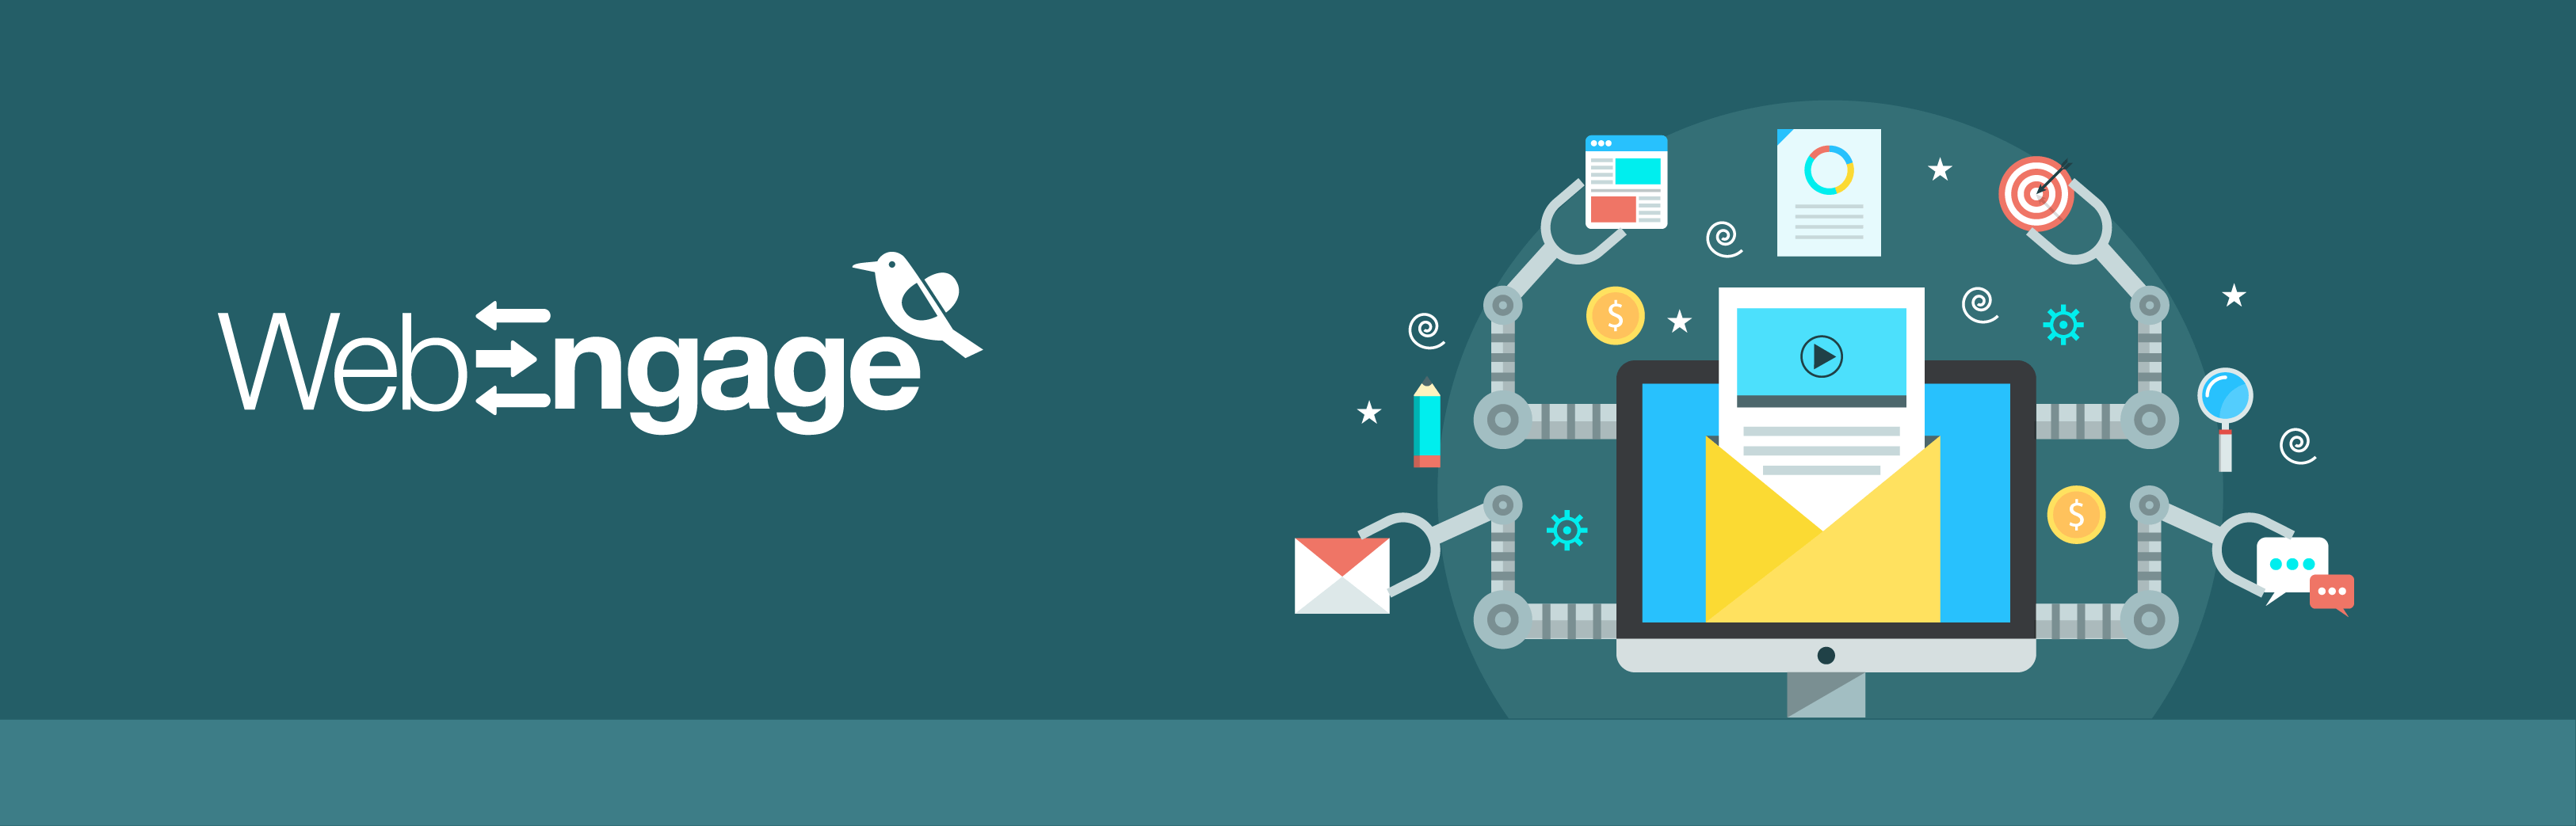 Downloads With Marketing Automation